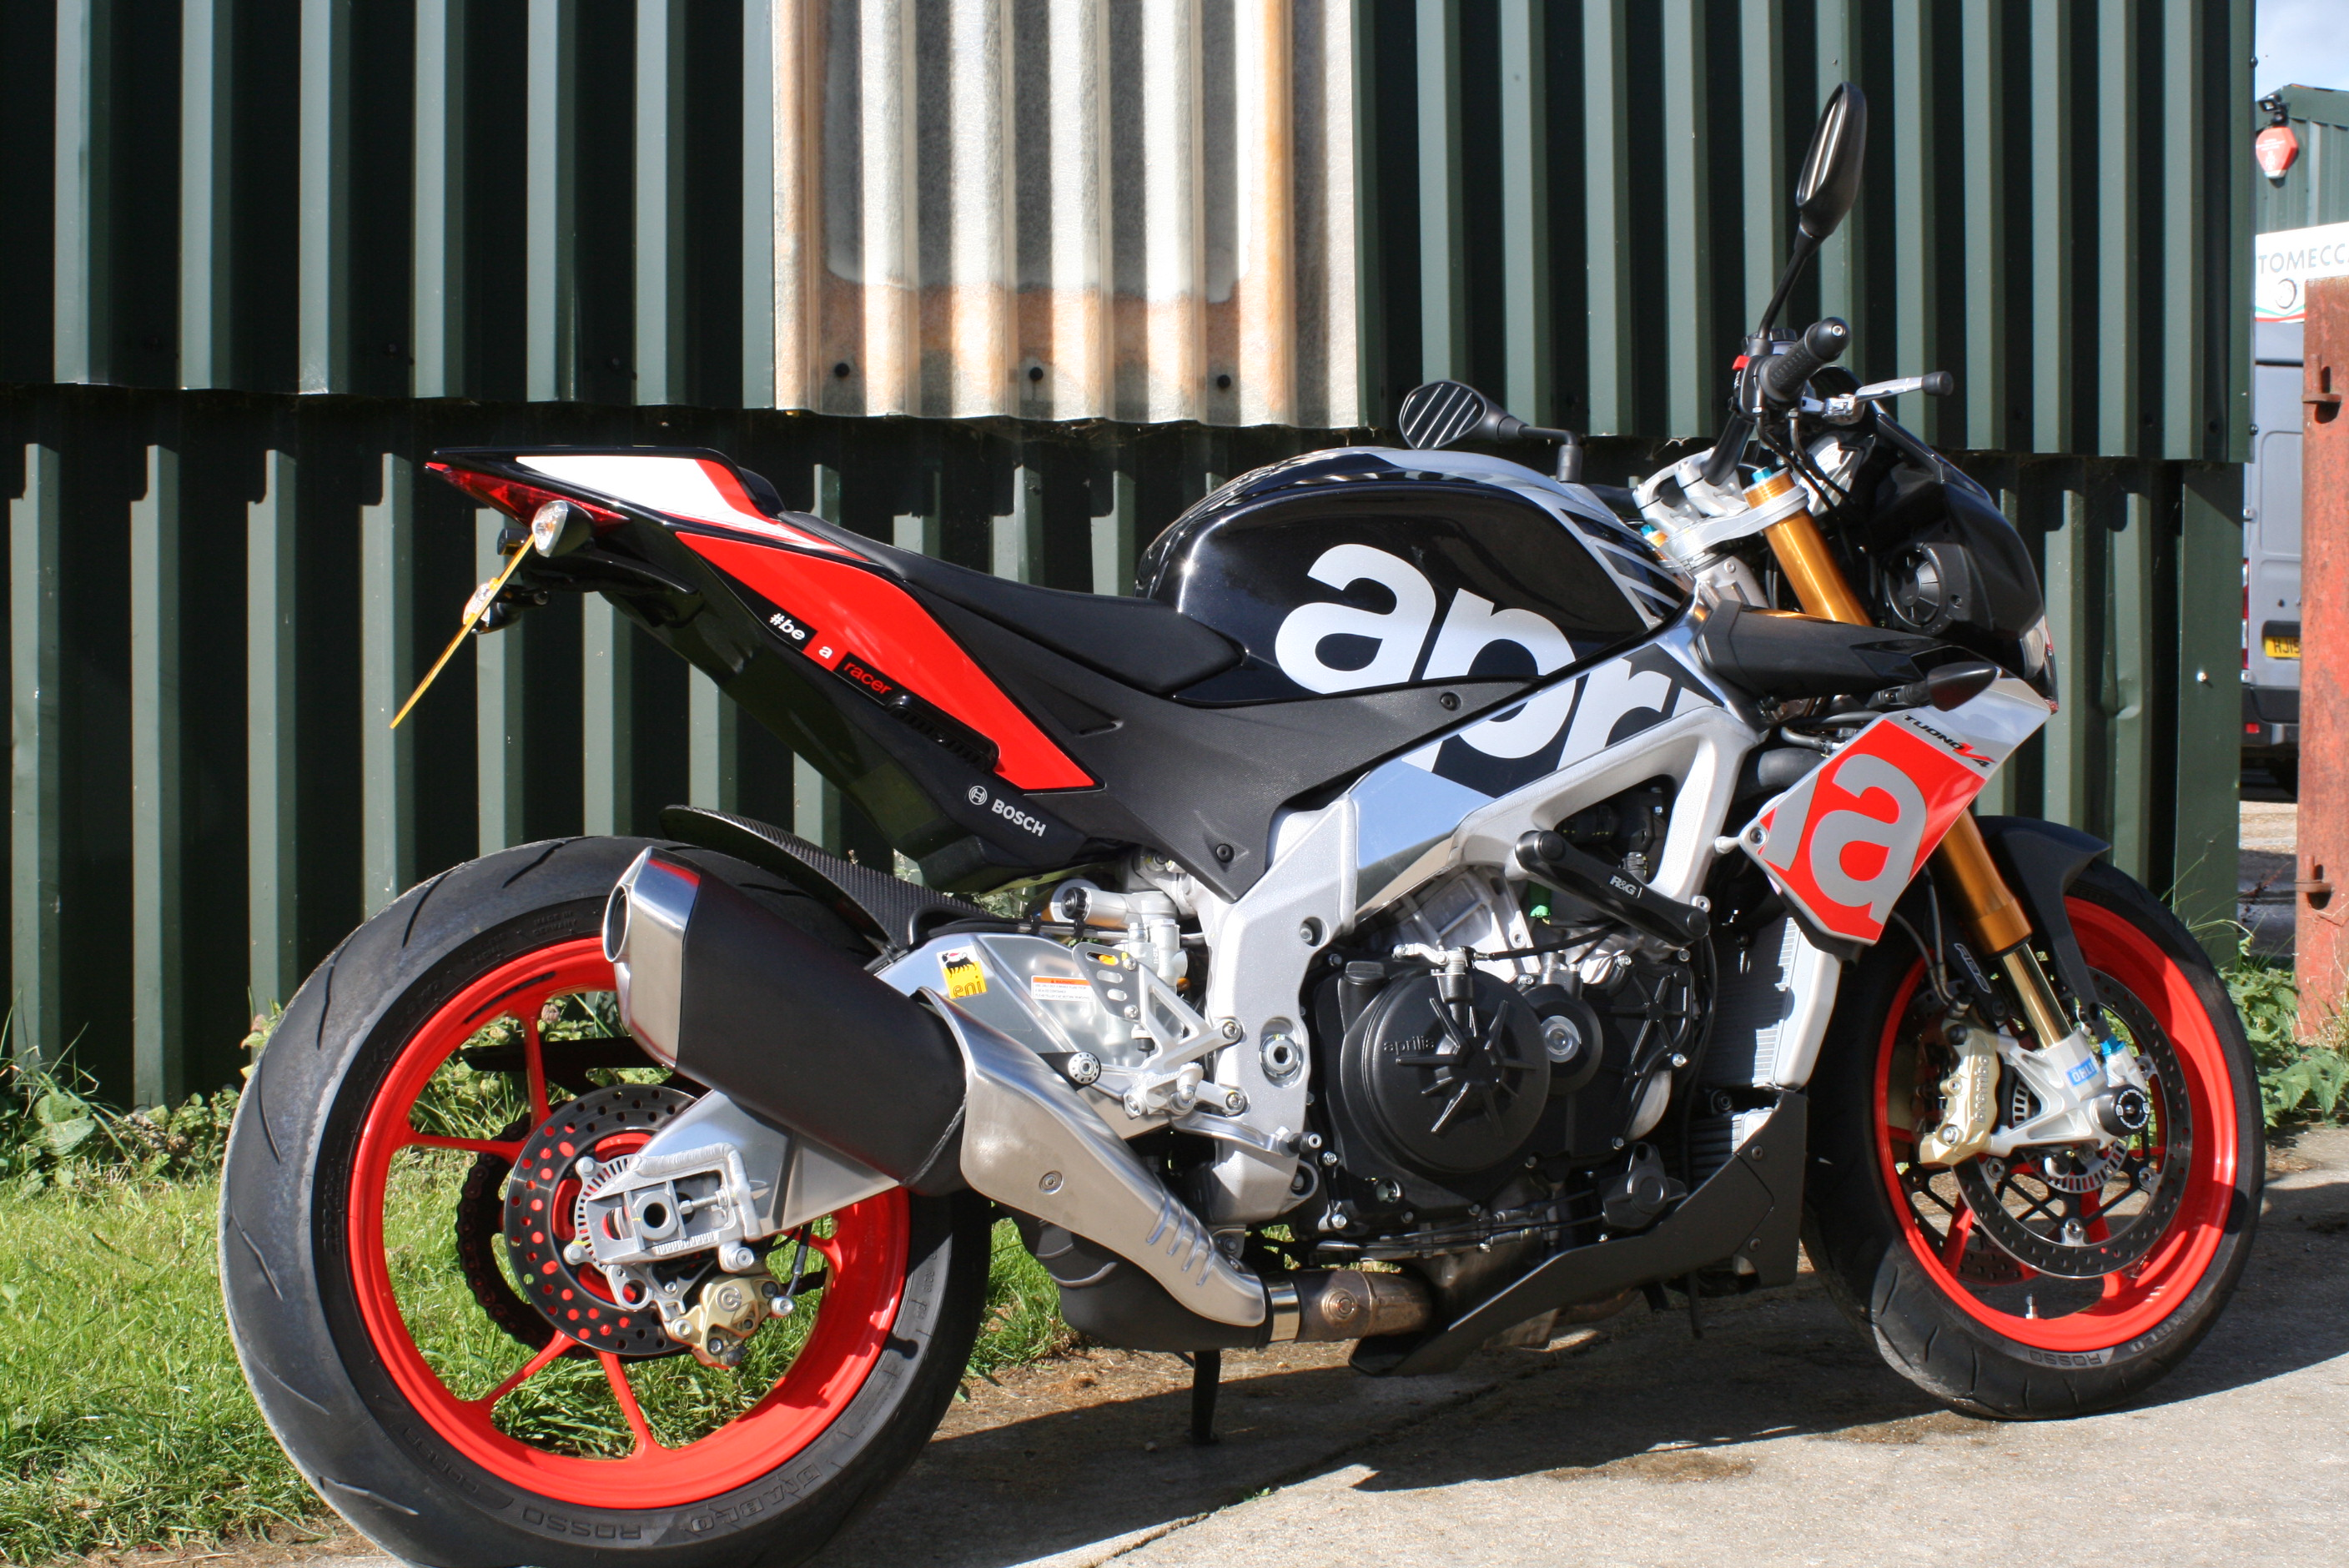 APRILIA JOINS THE PARTY!  SPICE UP YOUR LIFE!